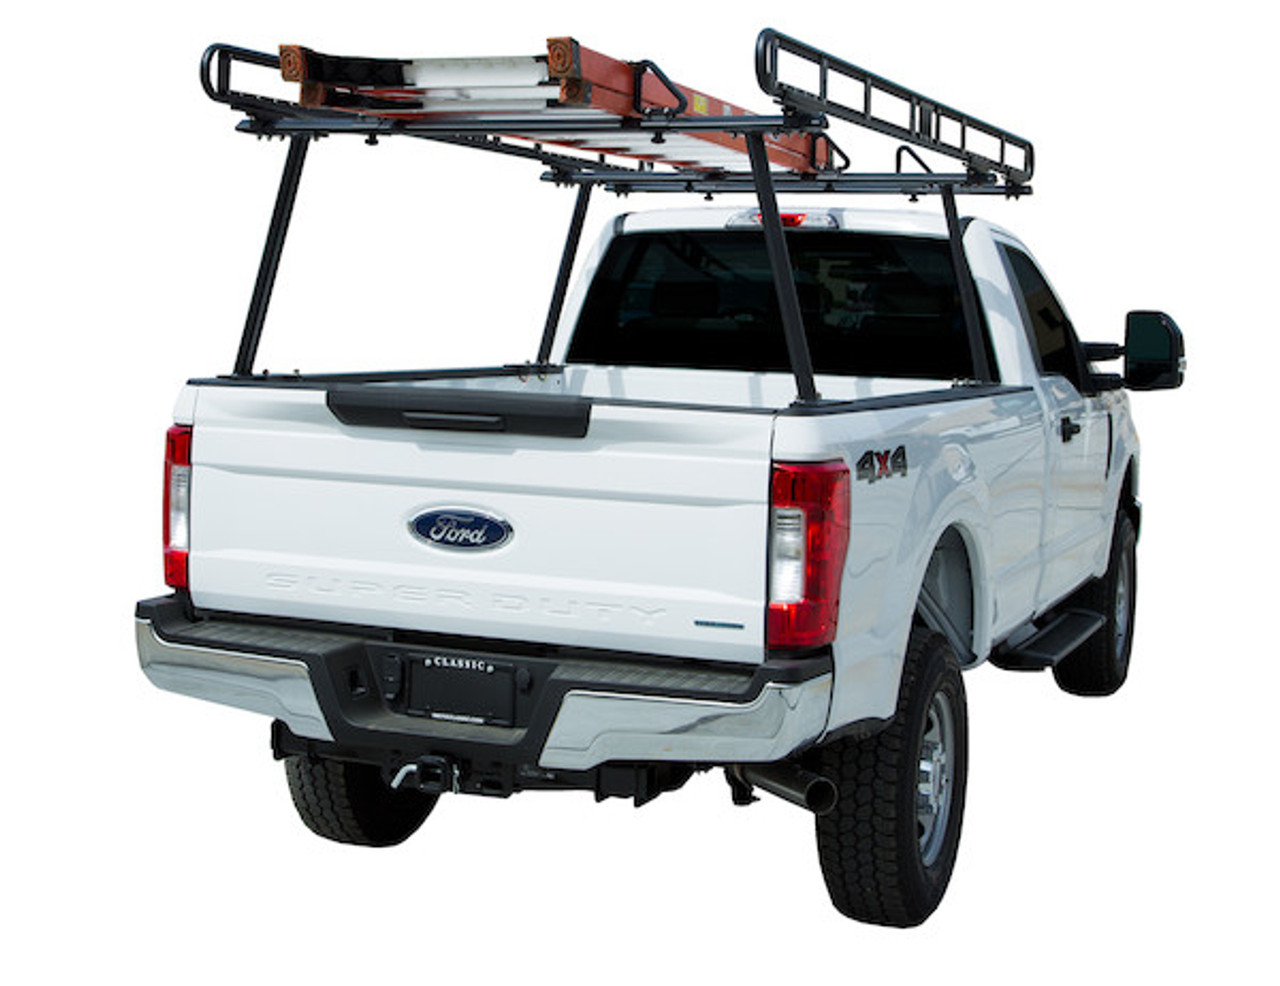 BUYERS 1501410 Black Powder-Coated Aluminum Truck Ladder Rack Picture # 2